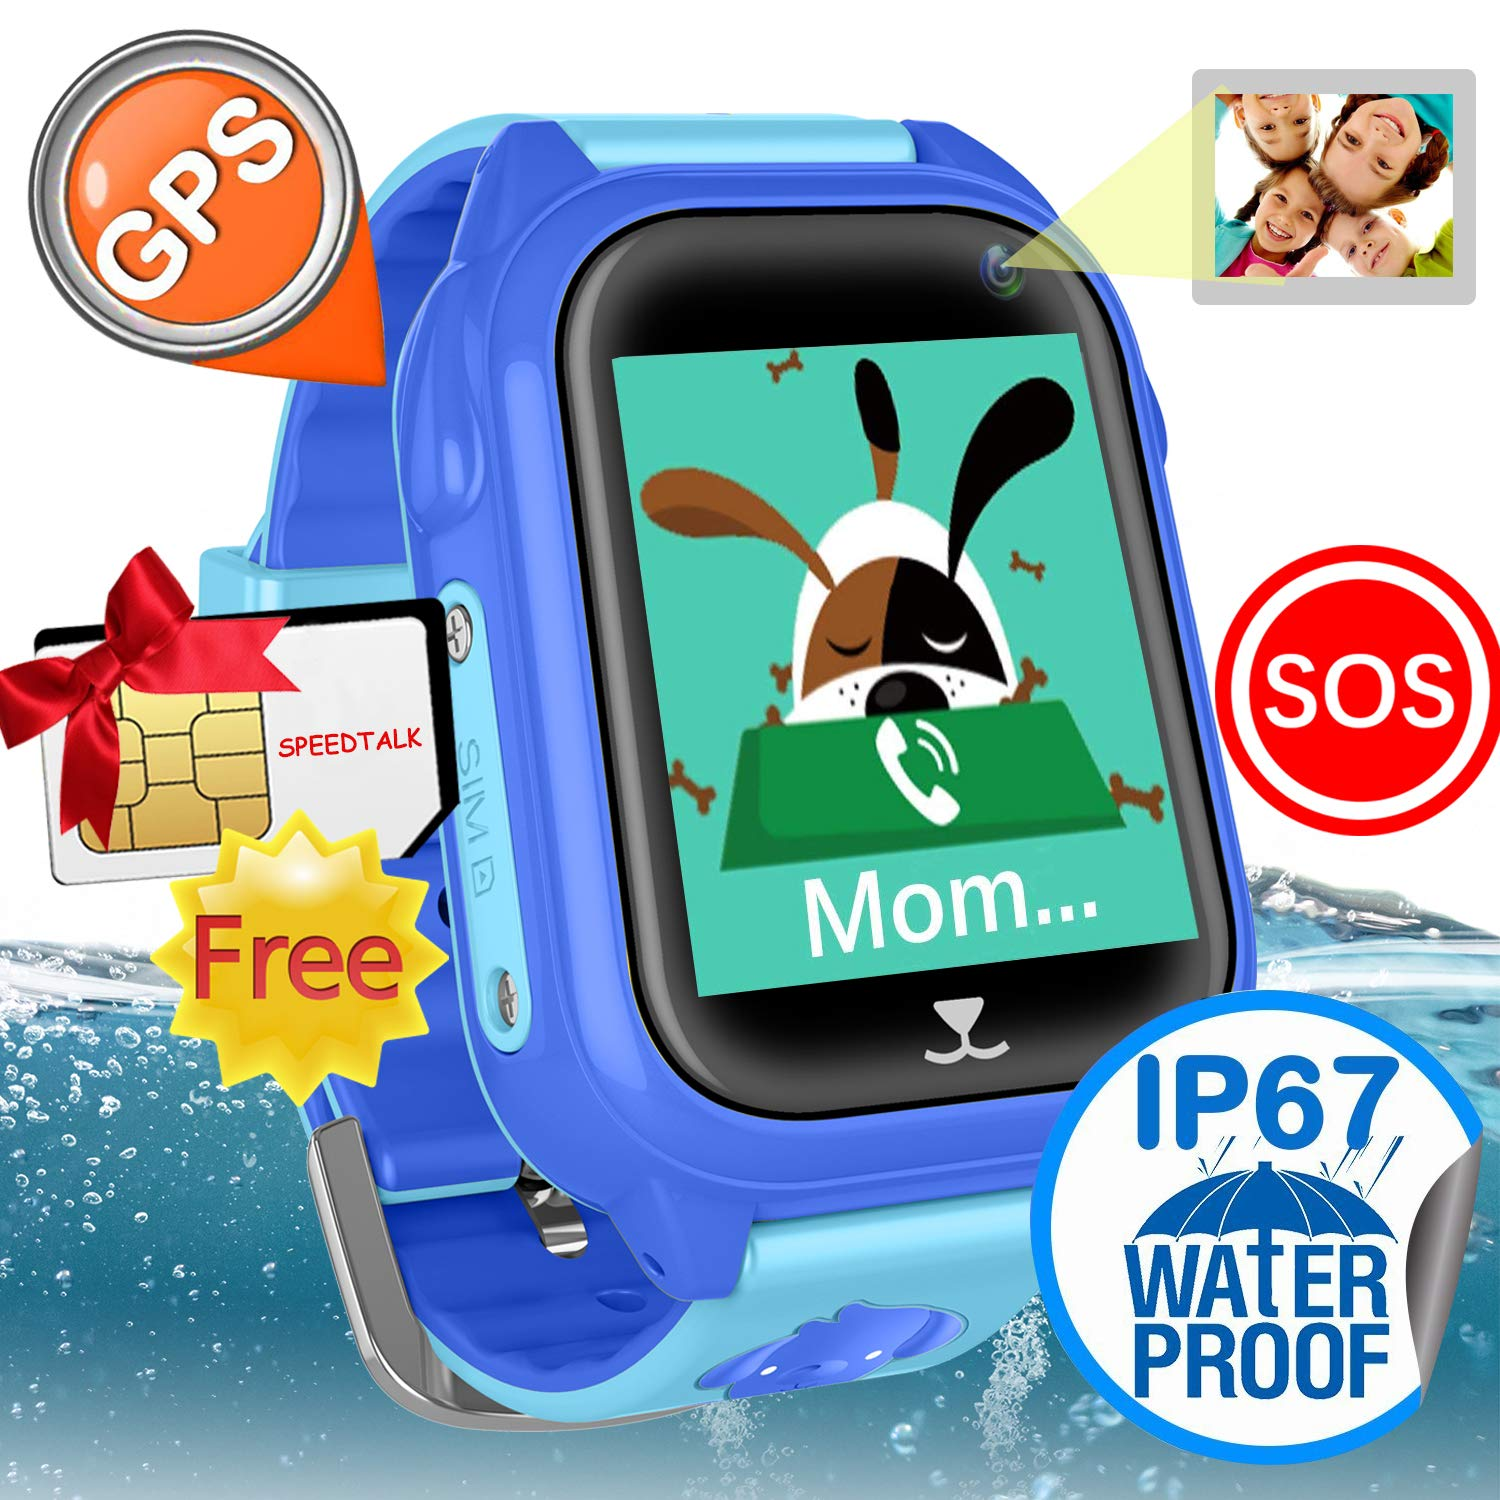 iCooLive Waterproof IP67 Kids Smart Watch Accurate GPS Tracker with FREE SIM CARD for Kid Boys Girls Smartwatch Phone watch Game watch with SOS Call Camera Electronic Learning Toys Birthday Gift by iCooLive (Image #1)